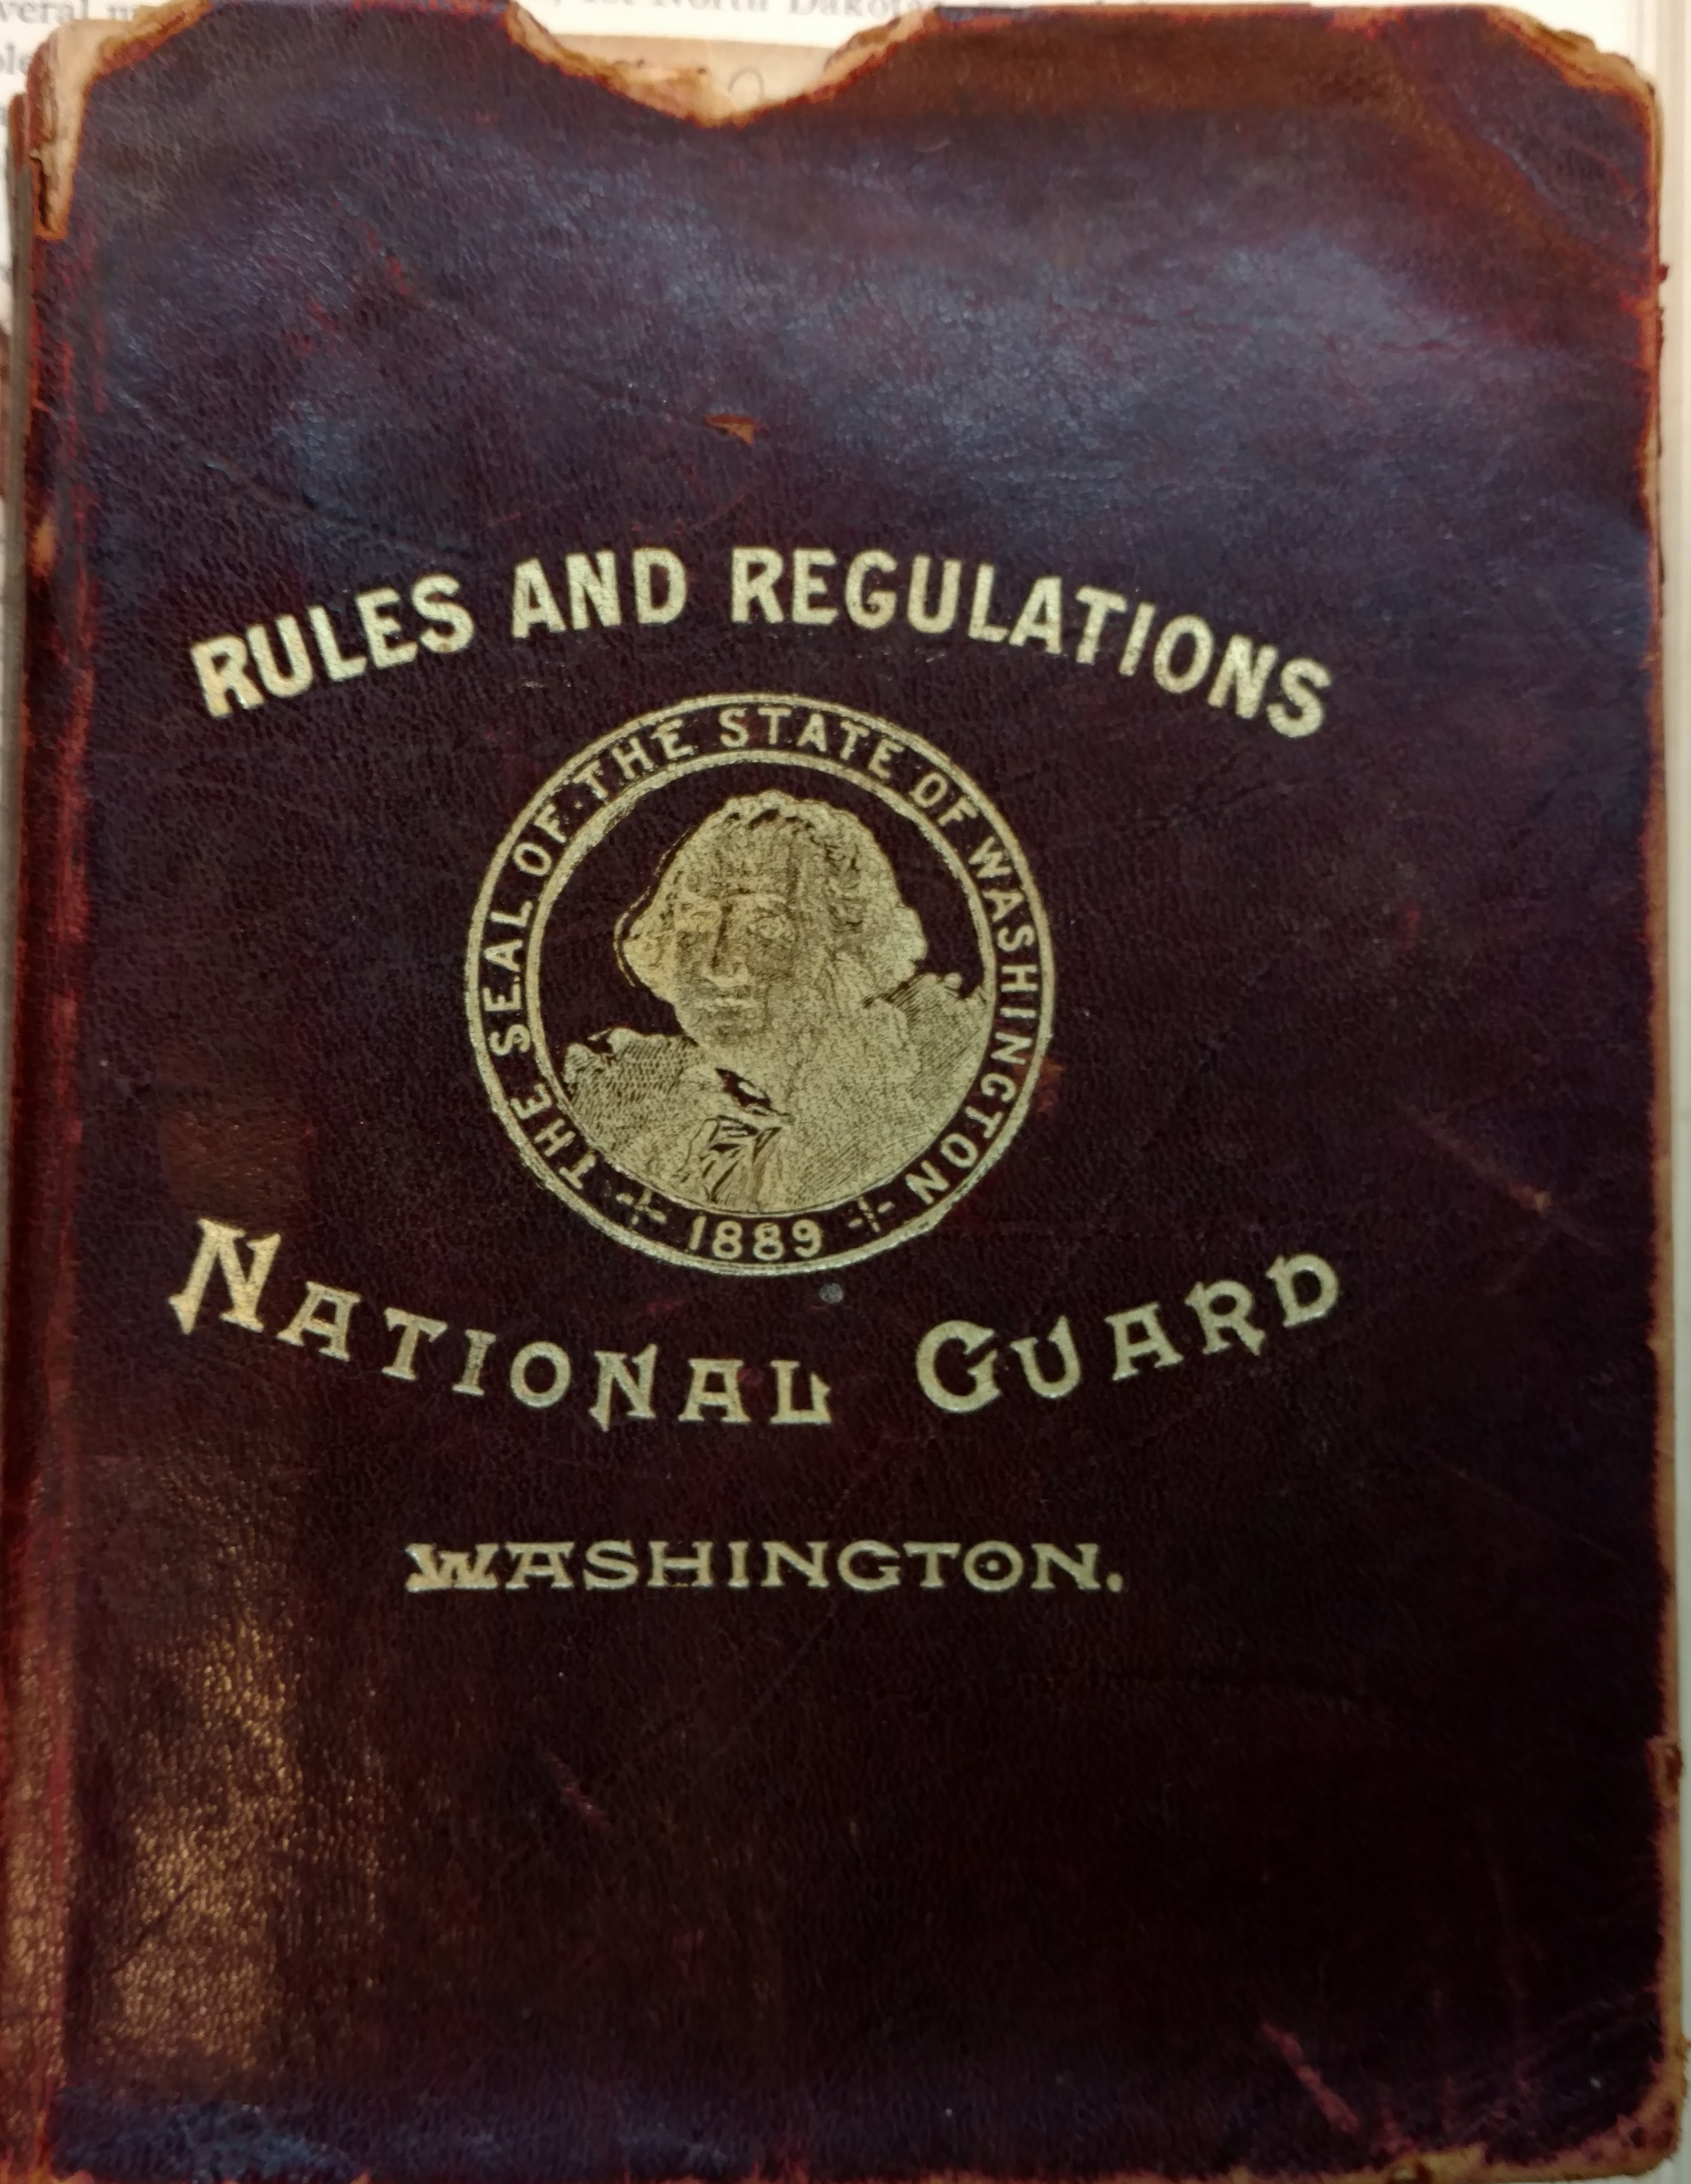 1890_NGW_Regulations